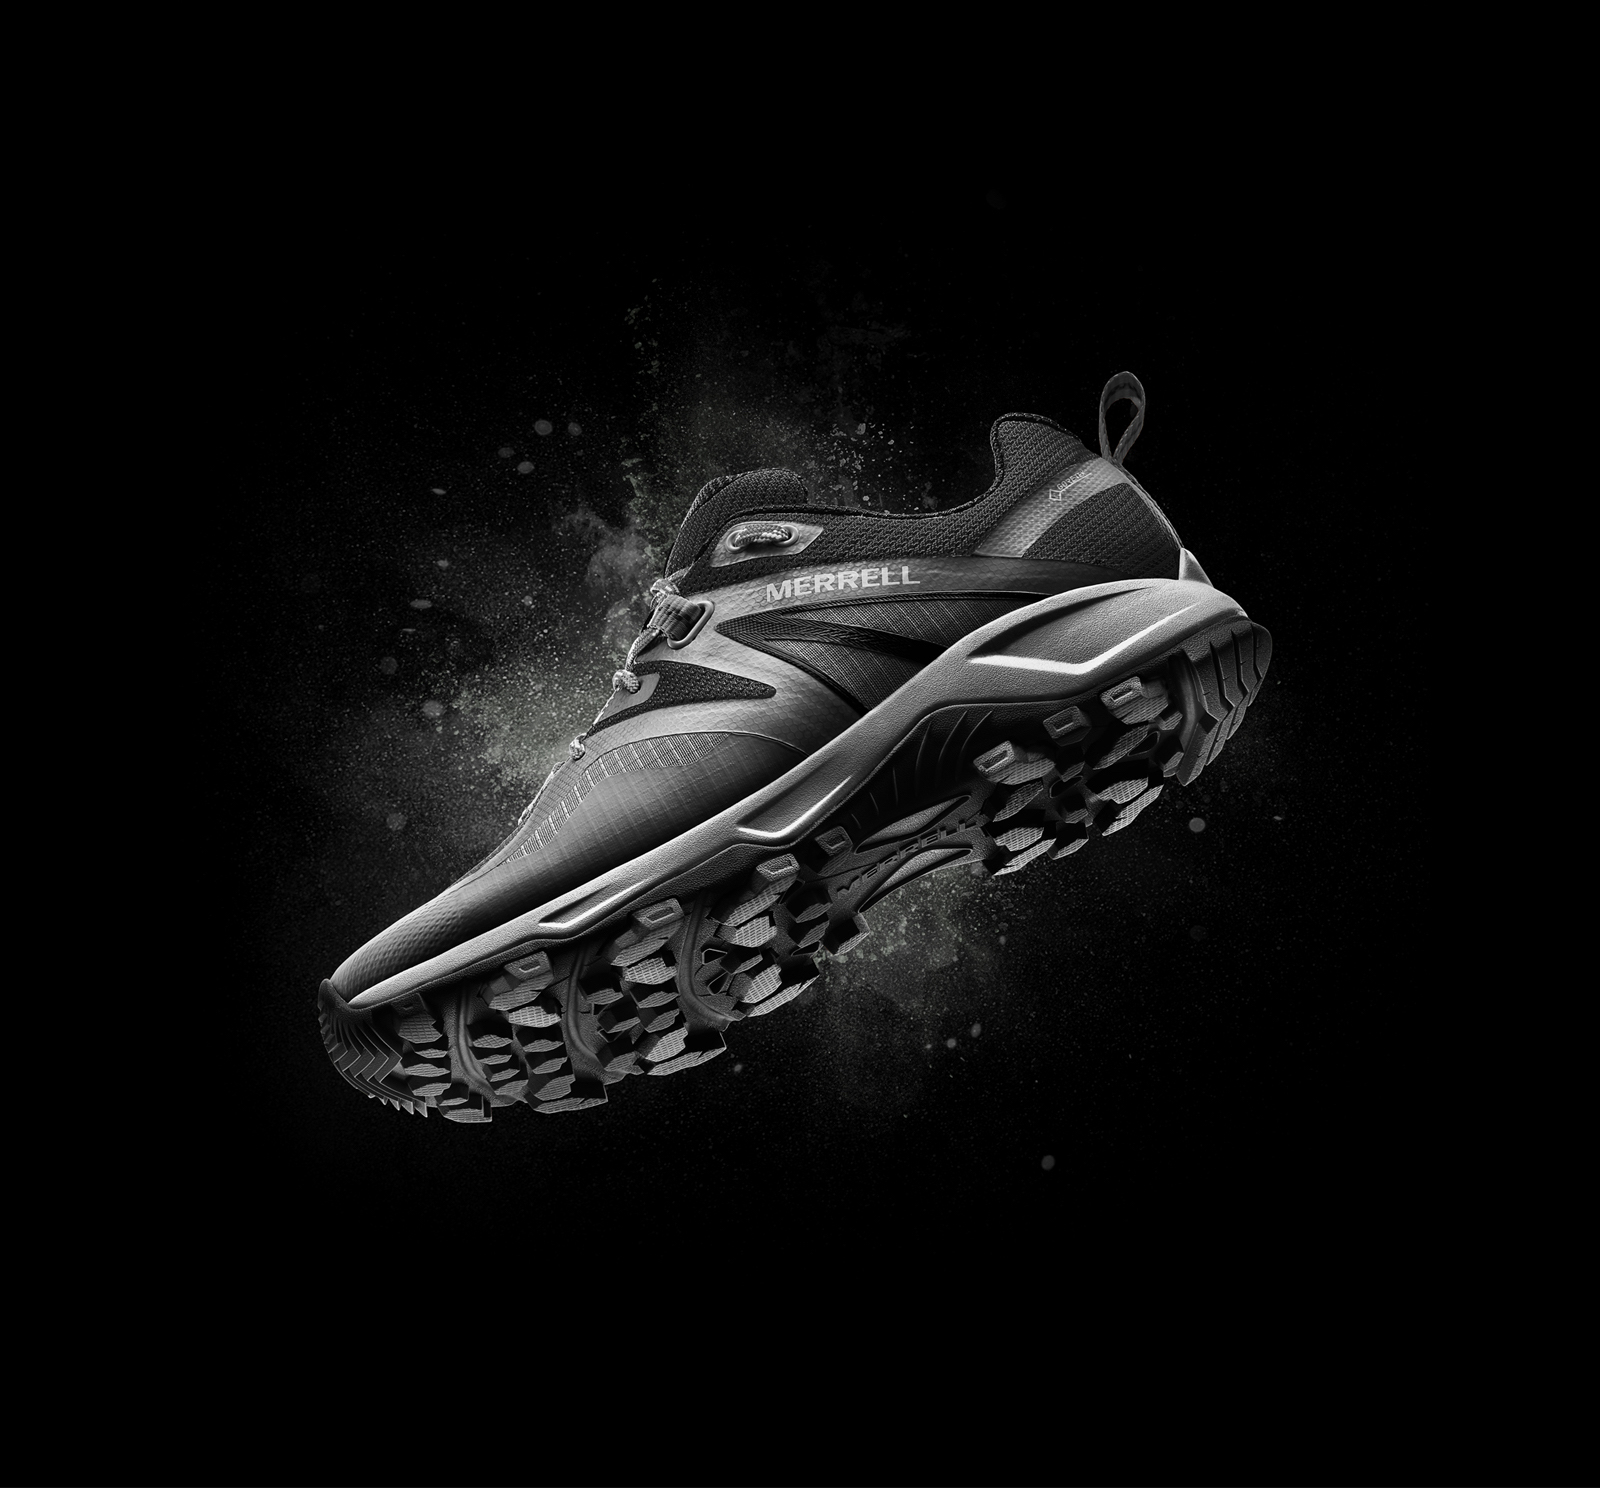 Merrell MQM Shoe floating against a black background